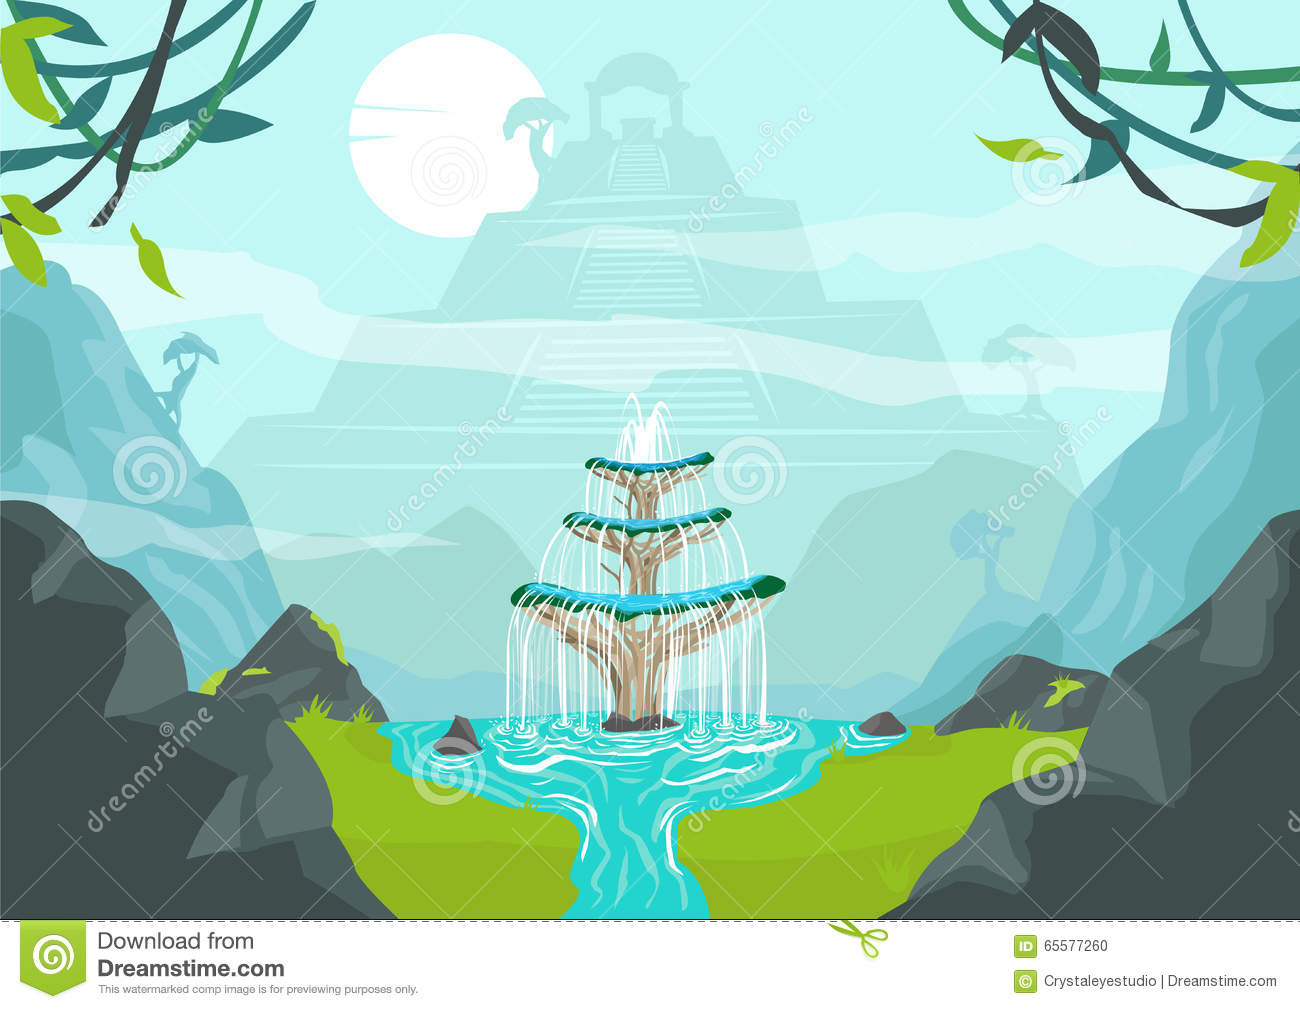 A Lost City With Fountain Of Youth Or Elixir Of Life Concept.